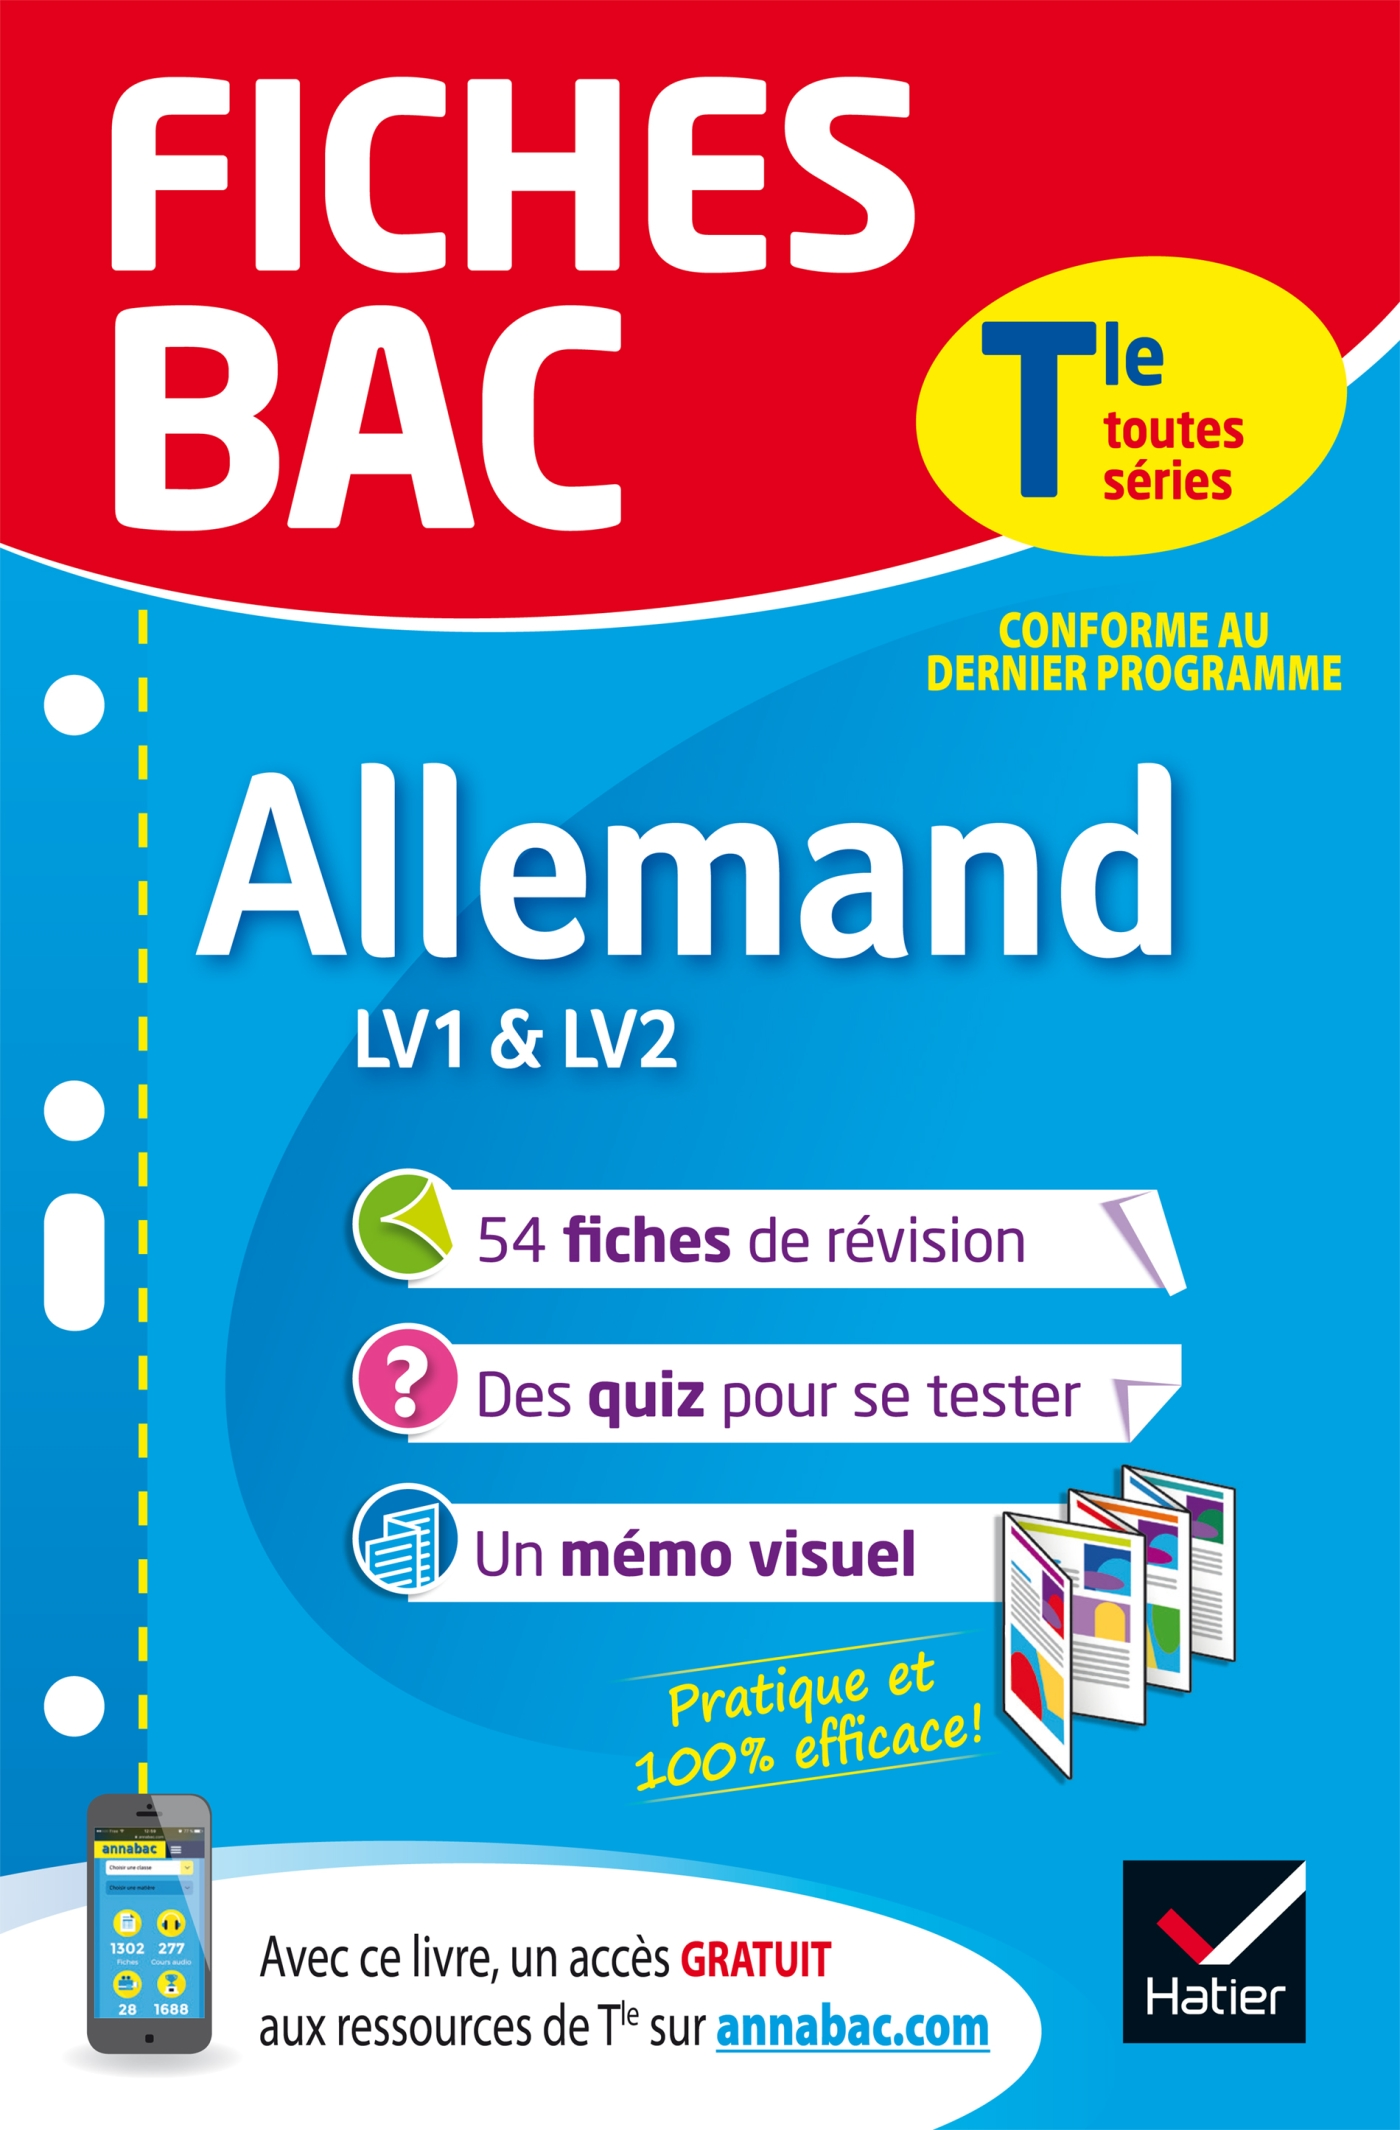 Fiches bac Allemand Tle (LV1 & LV2)